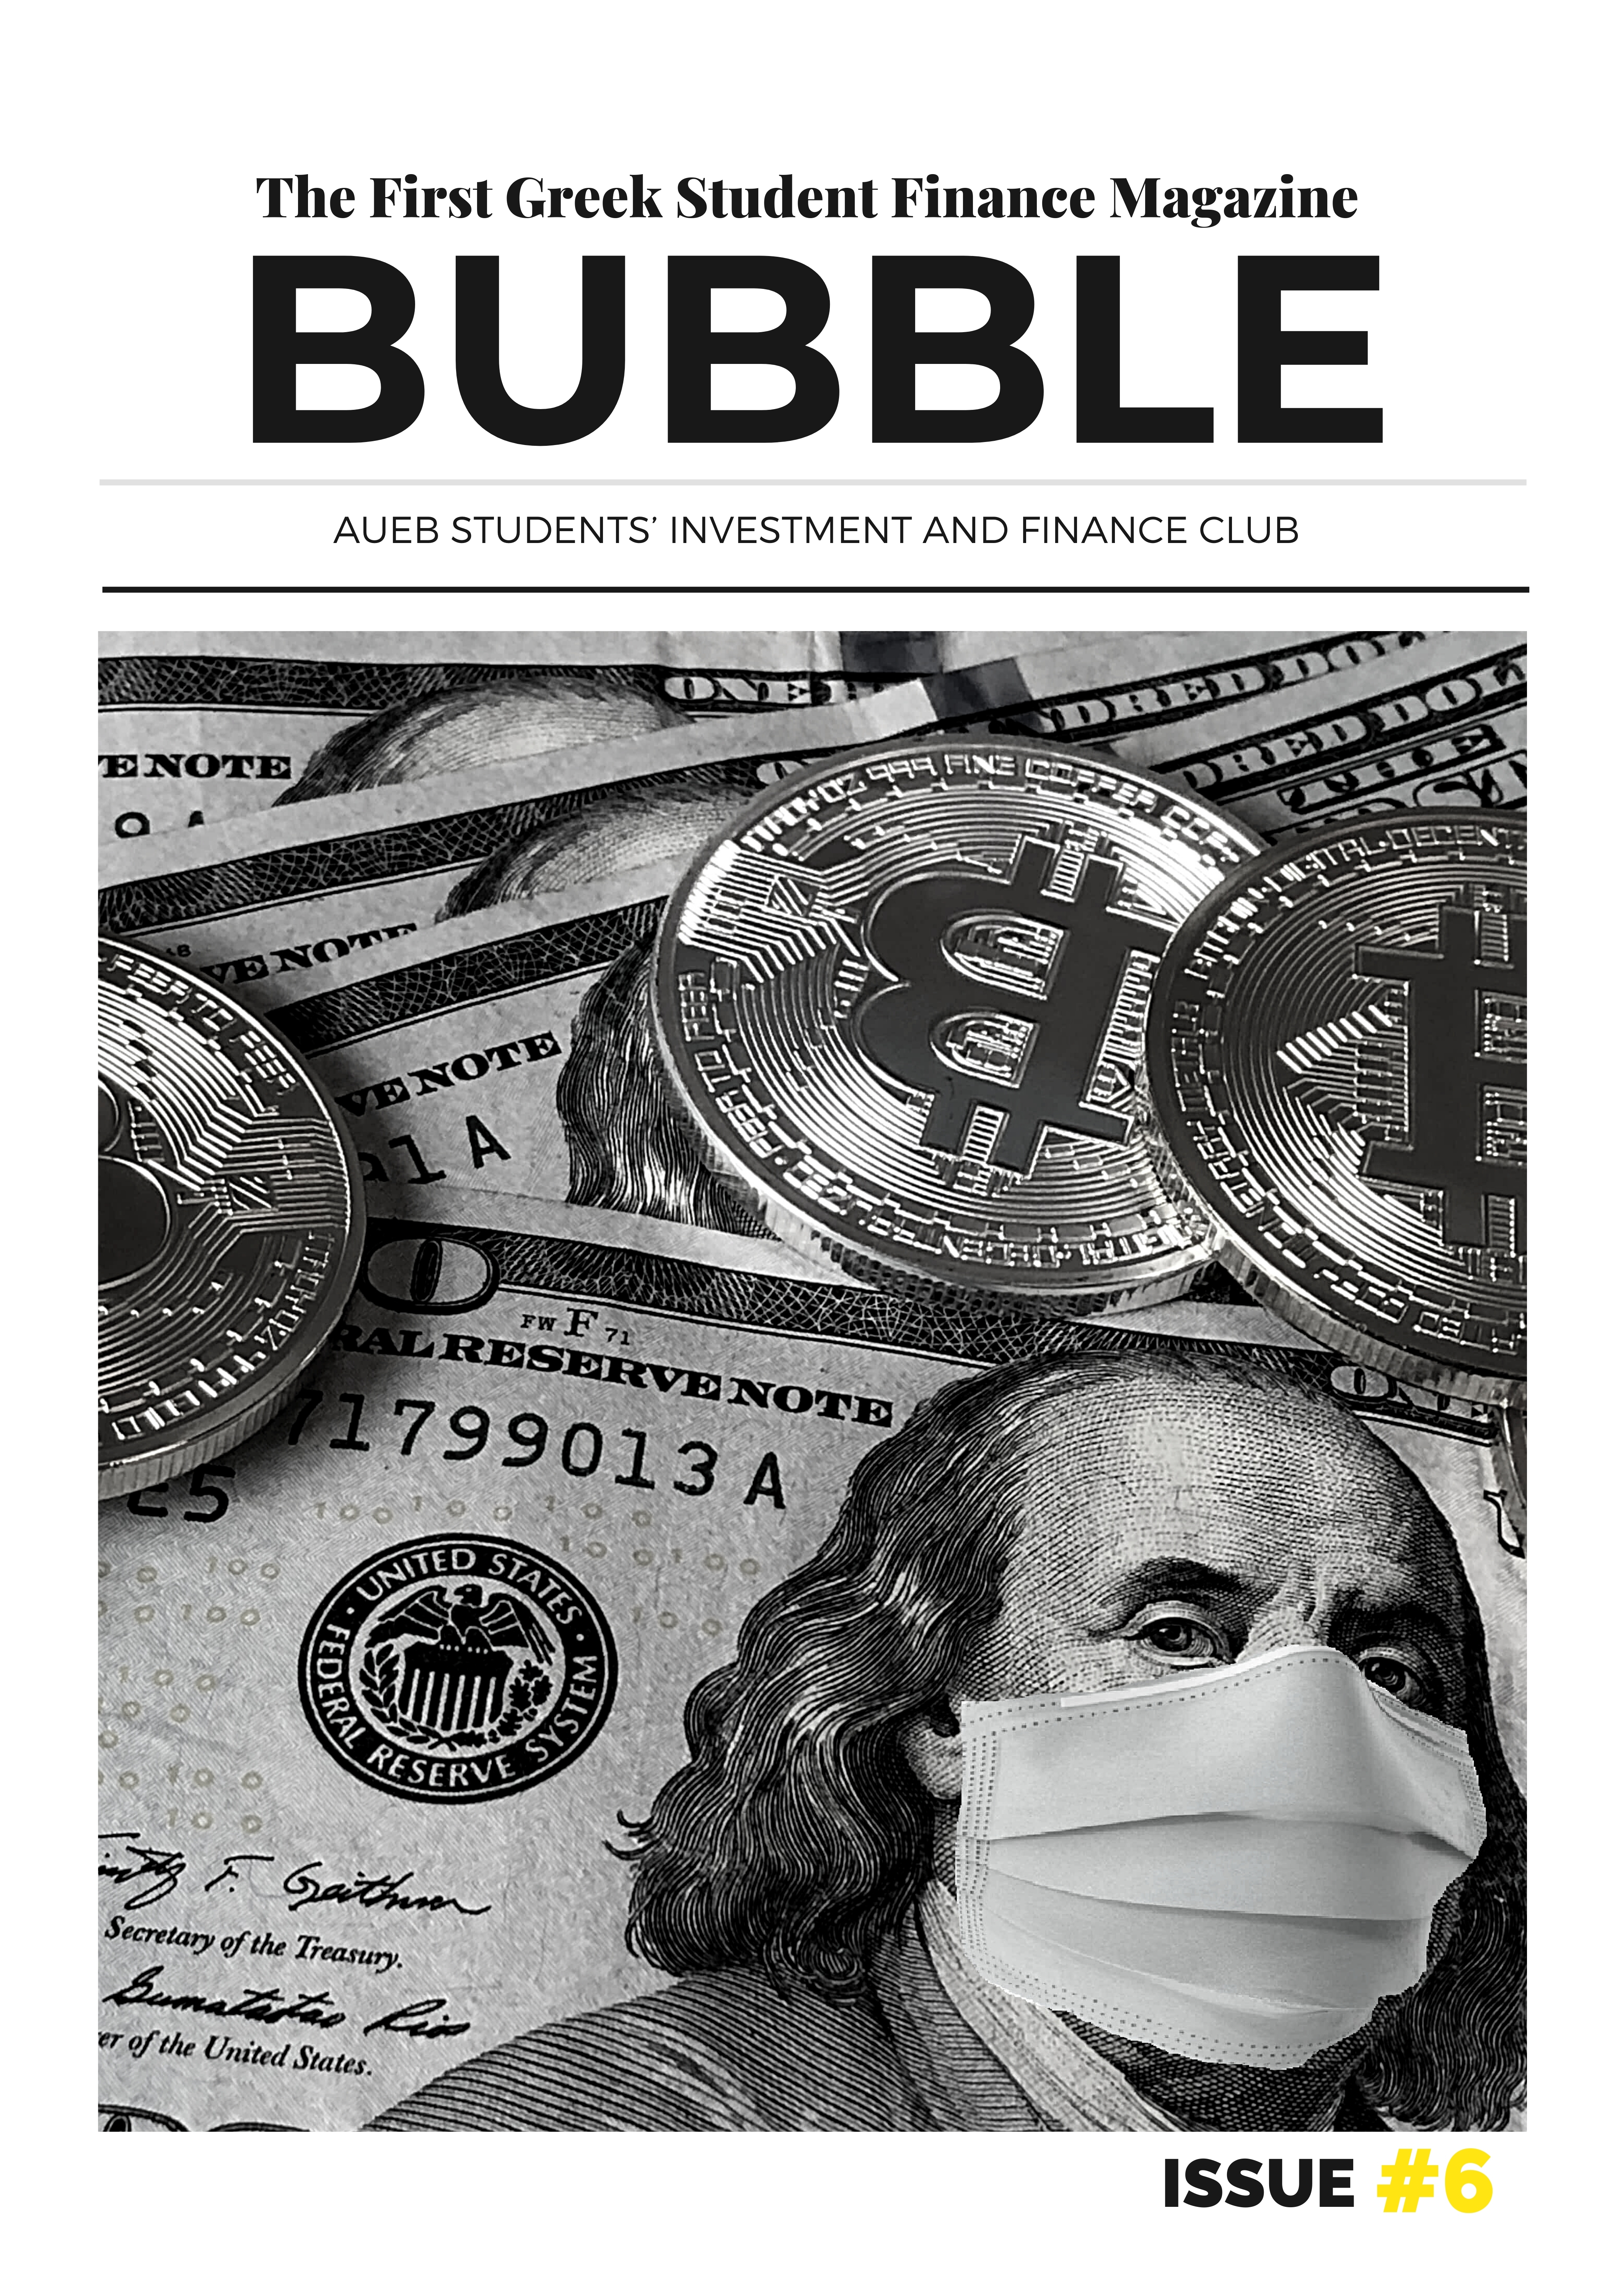 Bubble magazine - issue 6